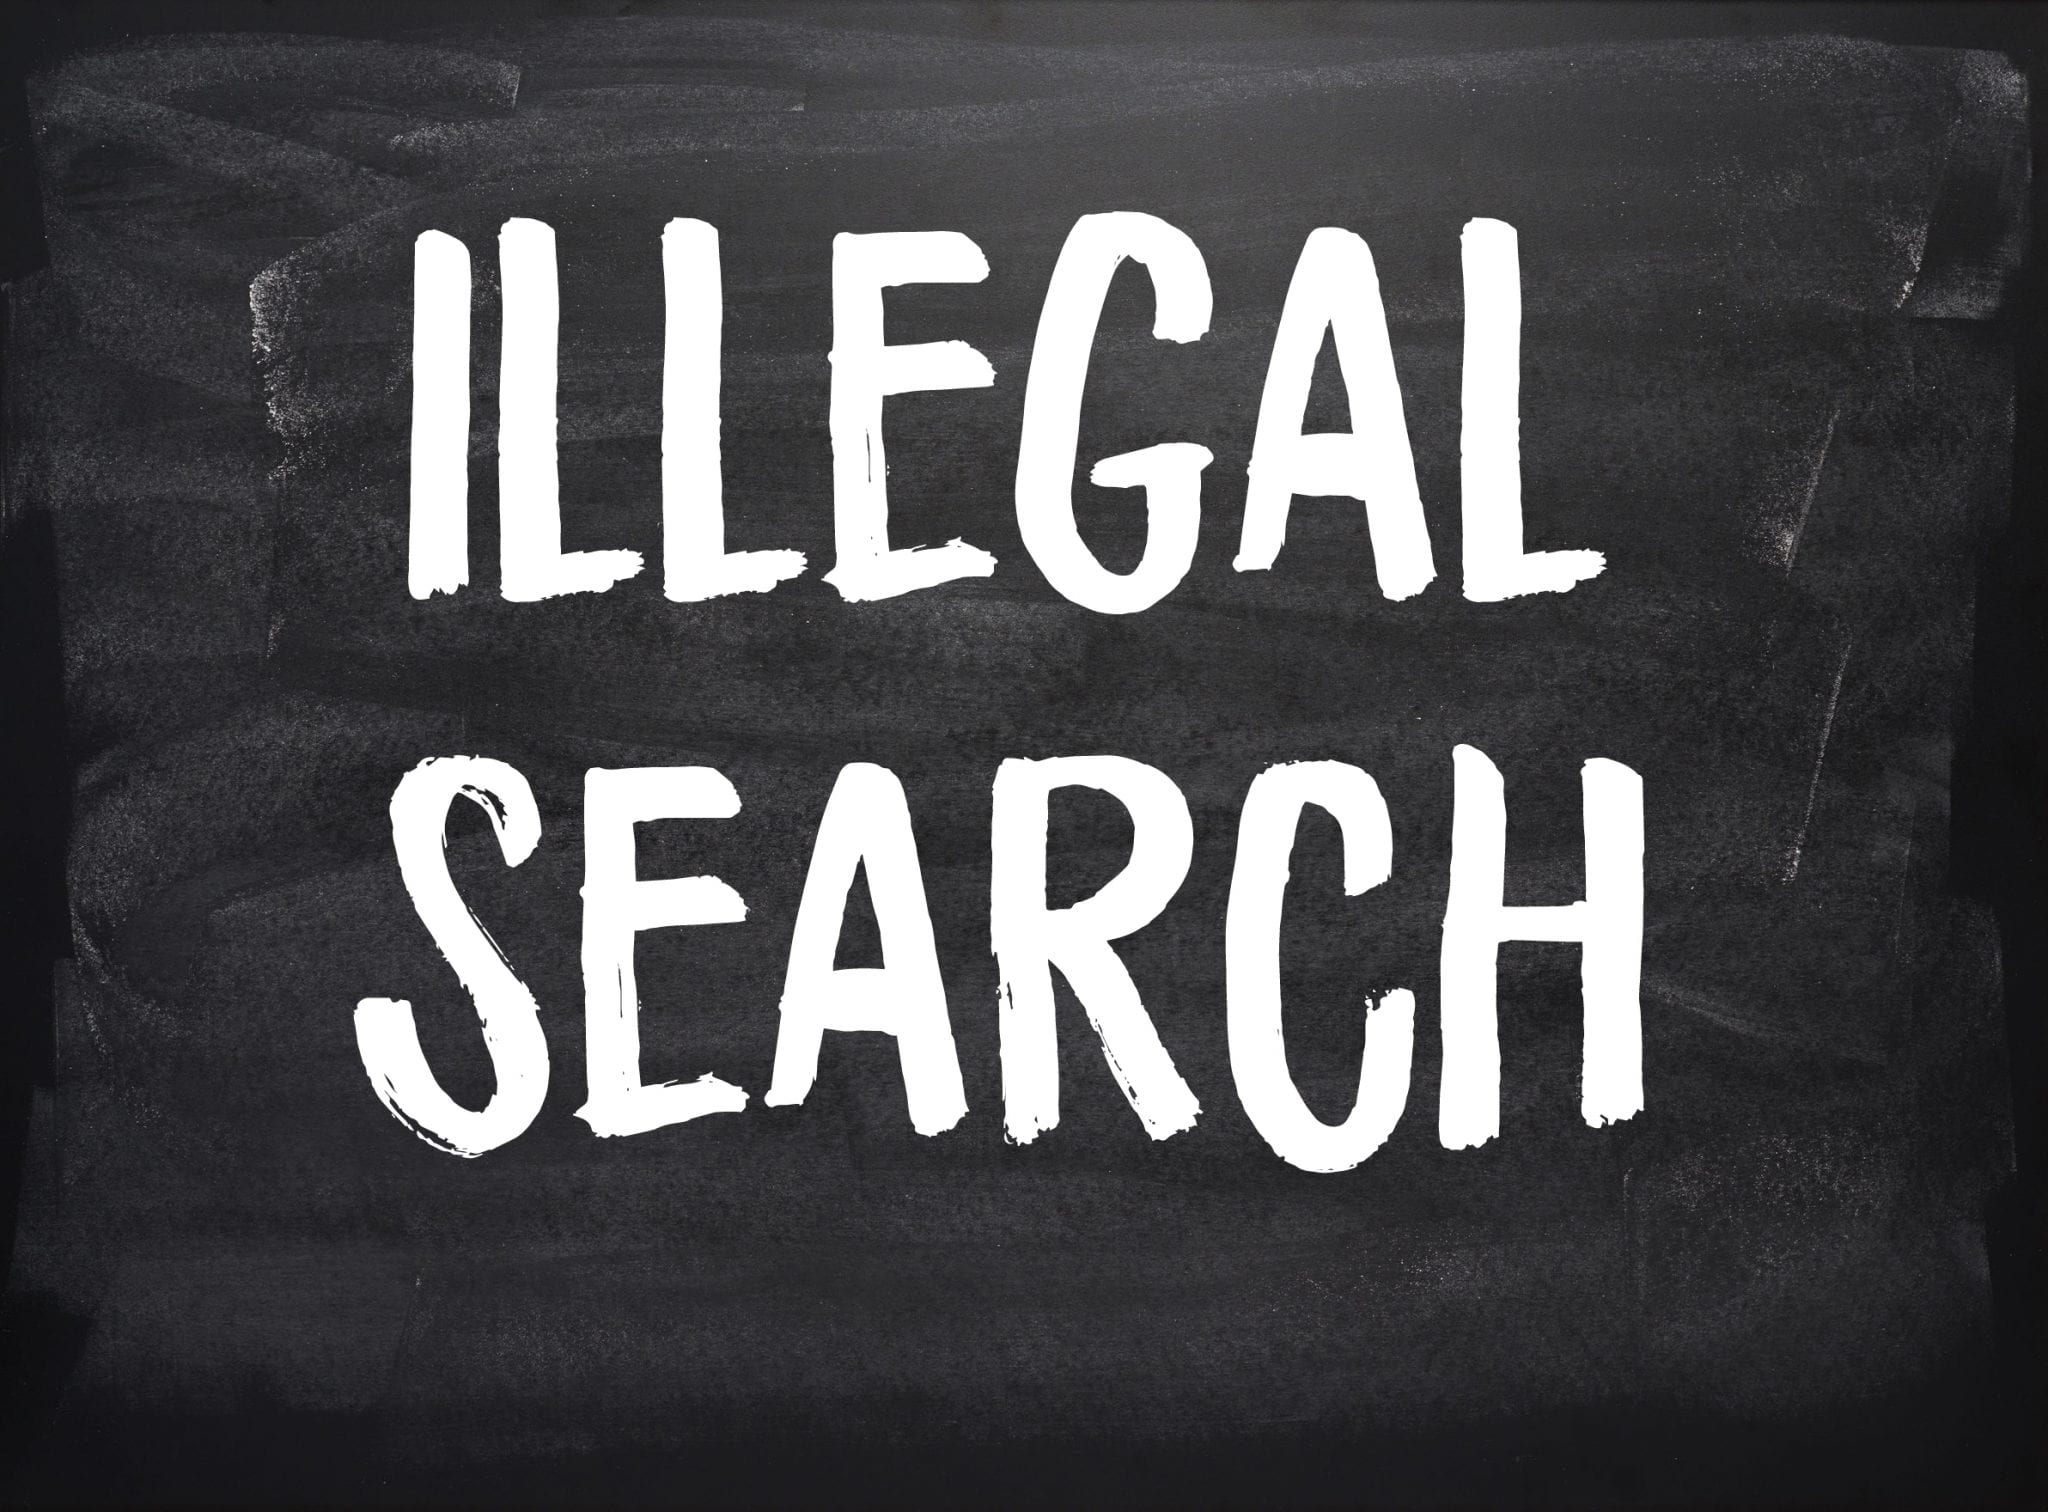 Texas Illegal Search & Seizure